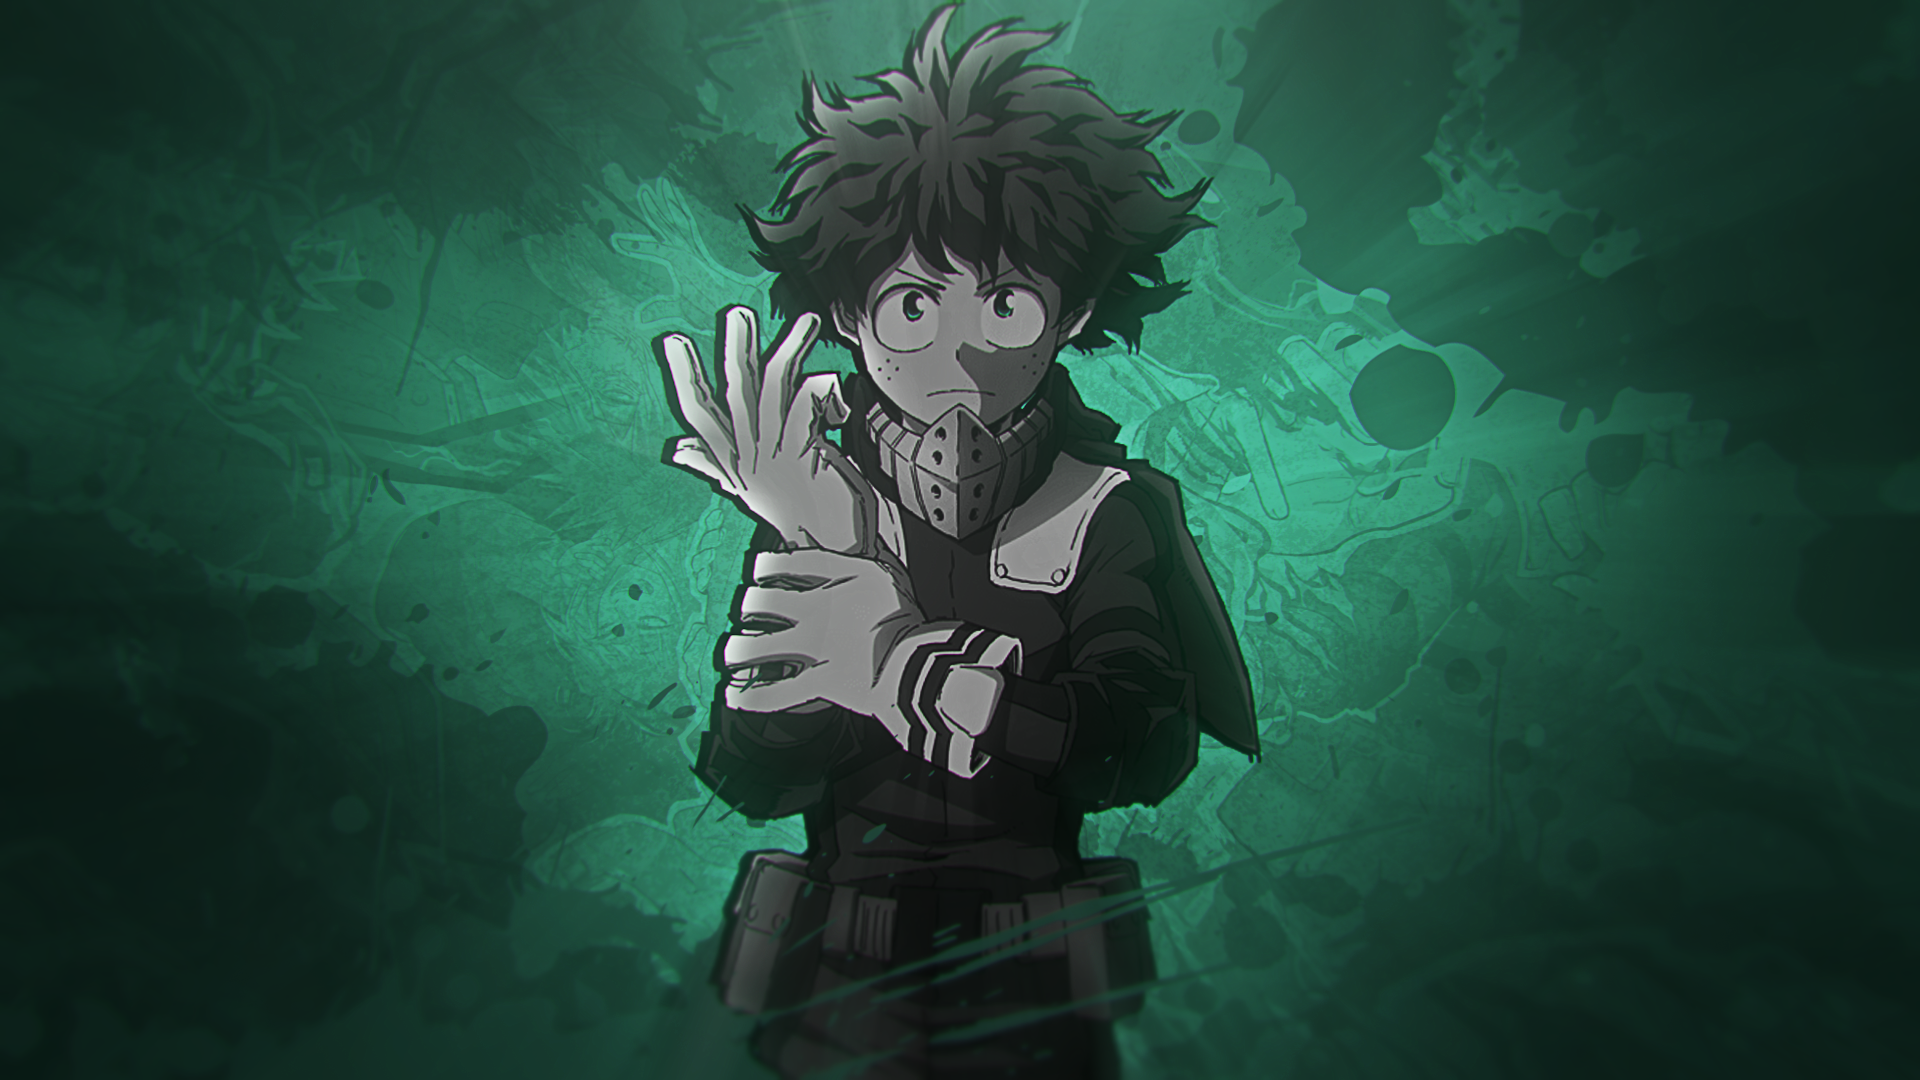 My Hero Academia Deku Wallpaper Posted By Samantha Mercado